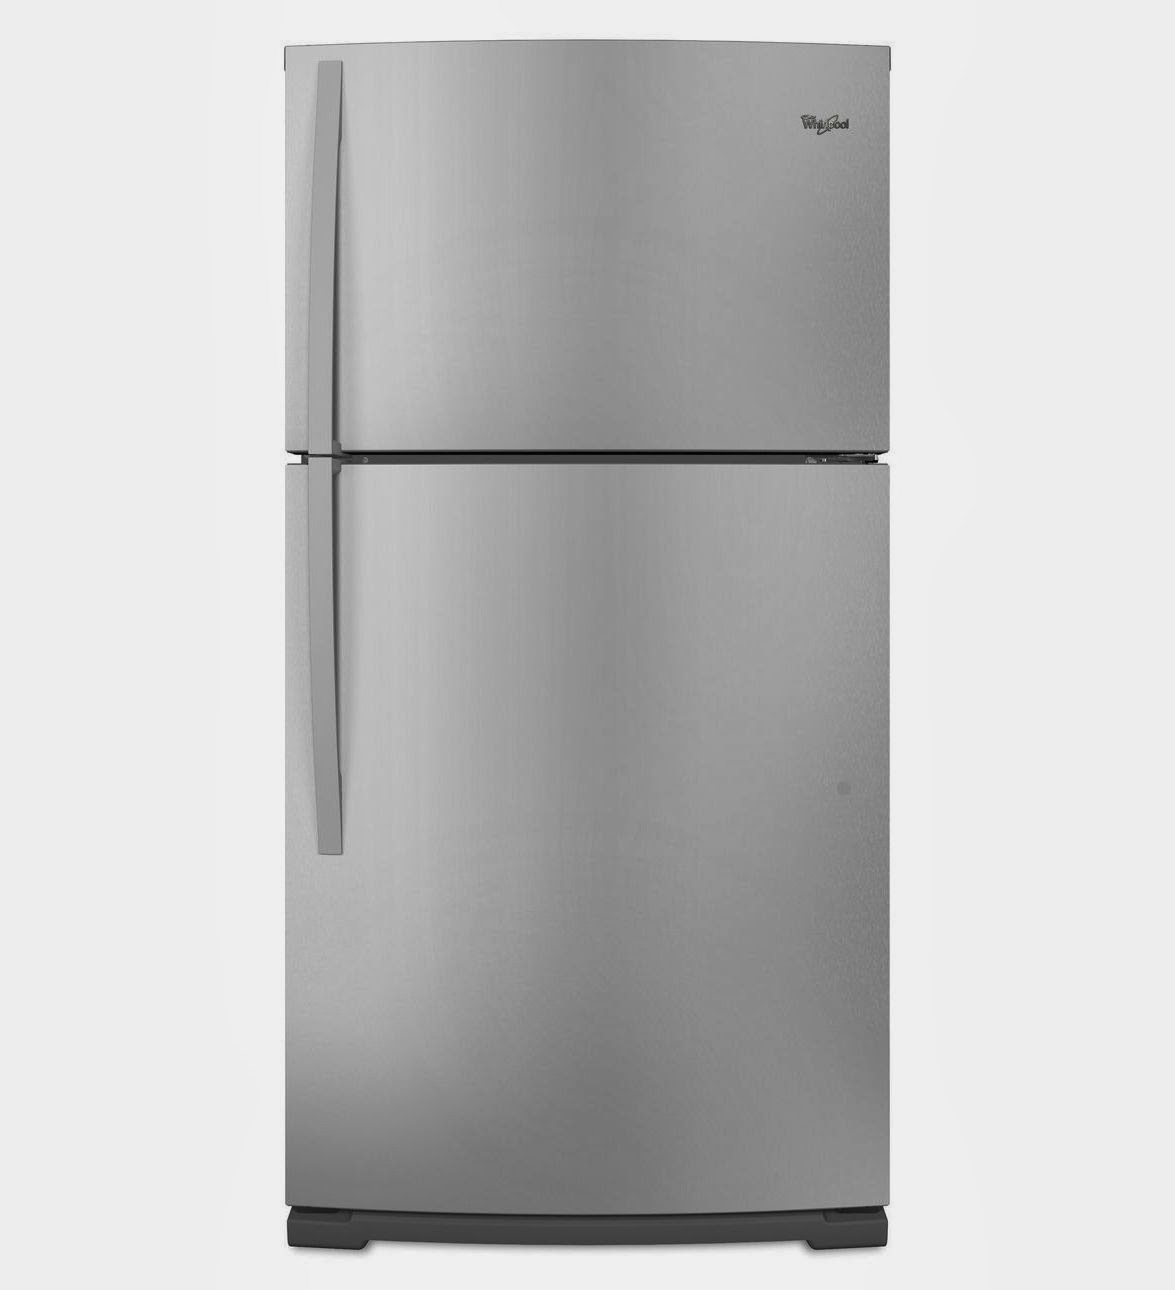 whirlpool refrigerator brand wrt371szbm whirlpool. Black Bedroom Furniture Sets. Home Design Ideas